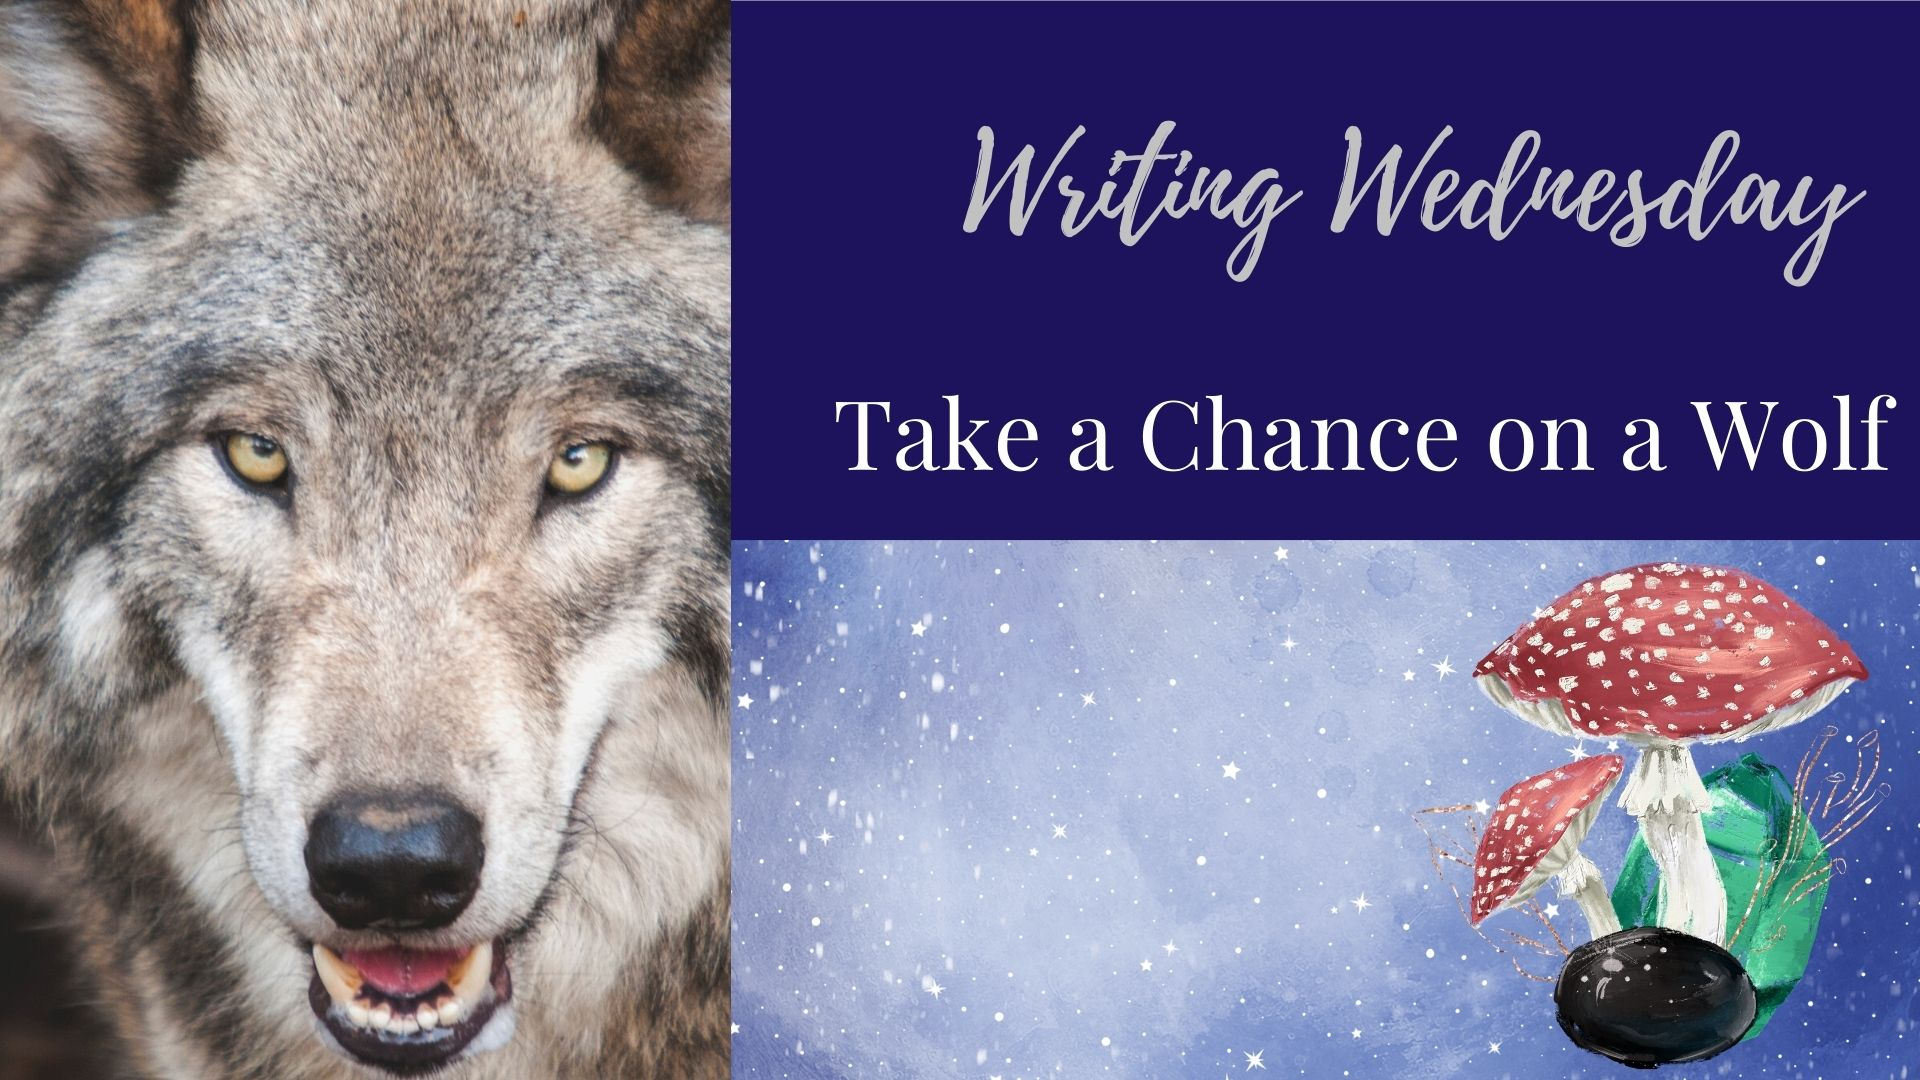 Writing Wednesday: Take a Chance on a Wolf